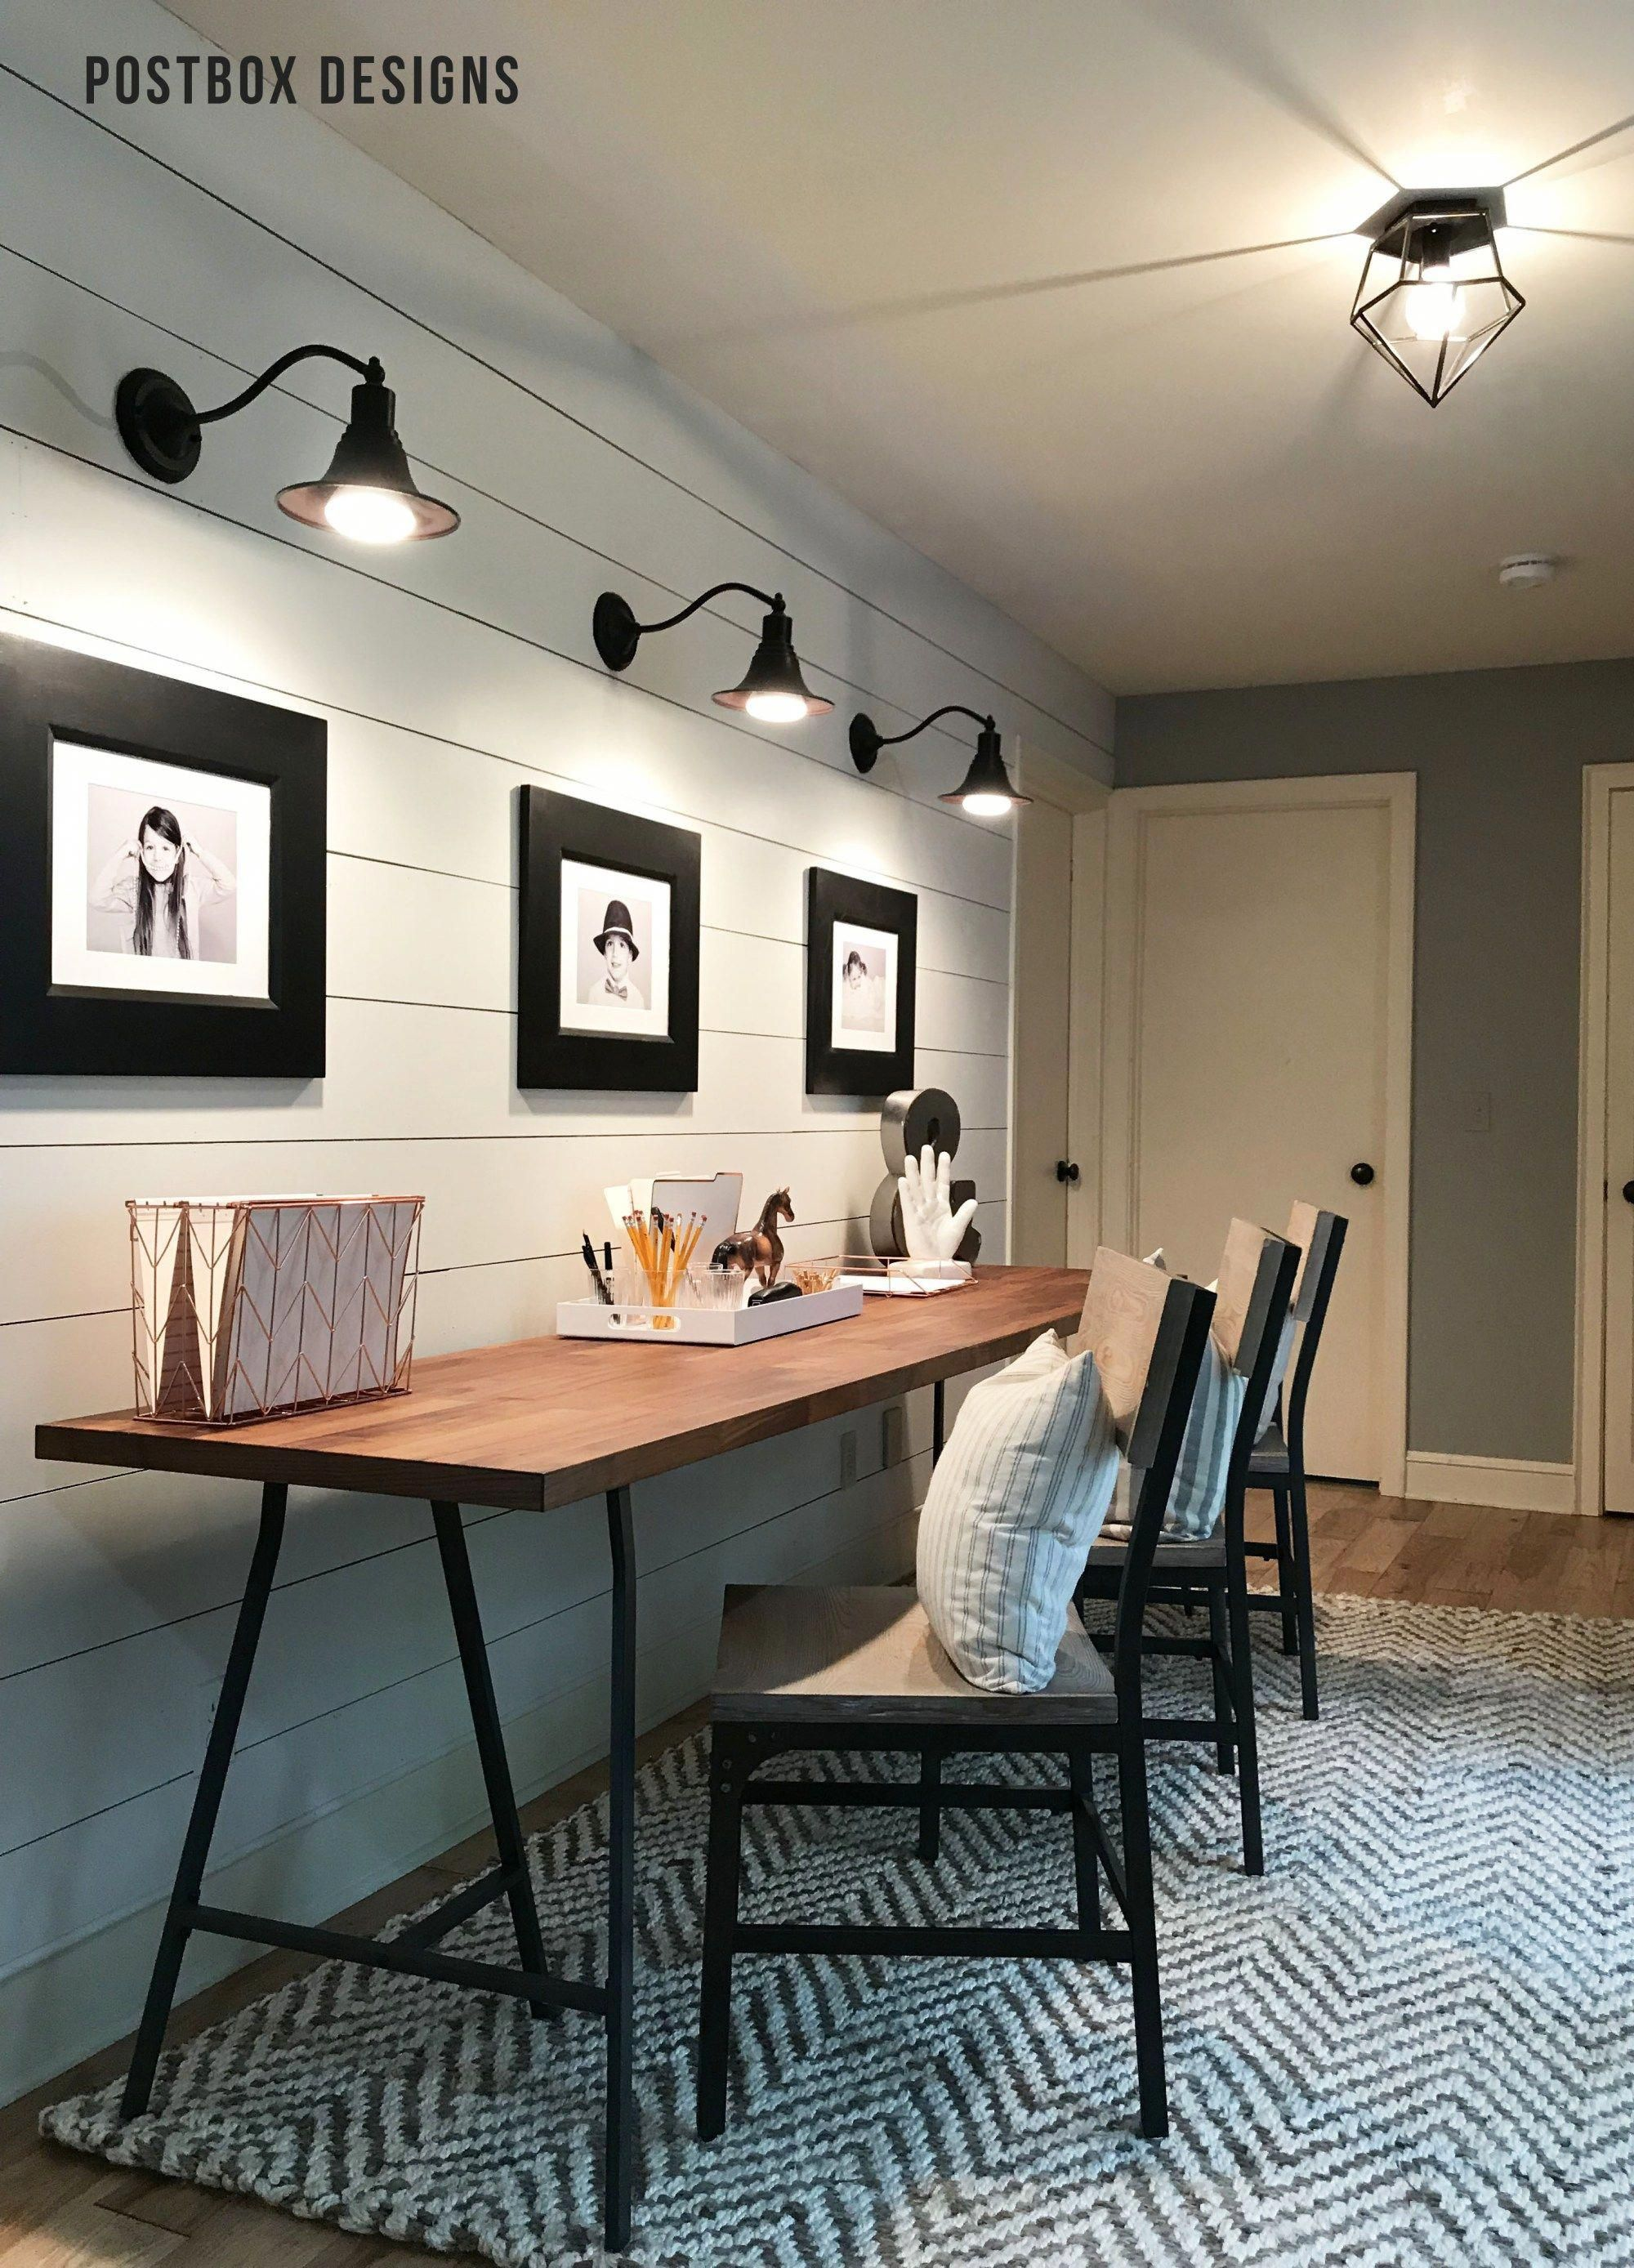 Receiving Room Interior Design: Strategy, Methods, Furthermore Overview In Pursuance Of